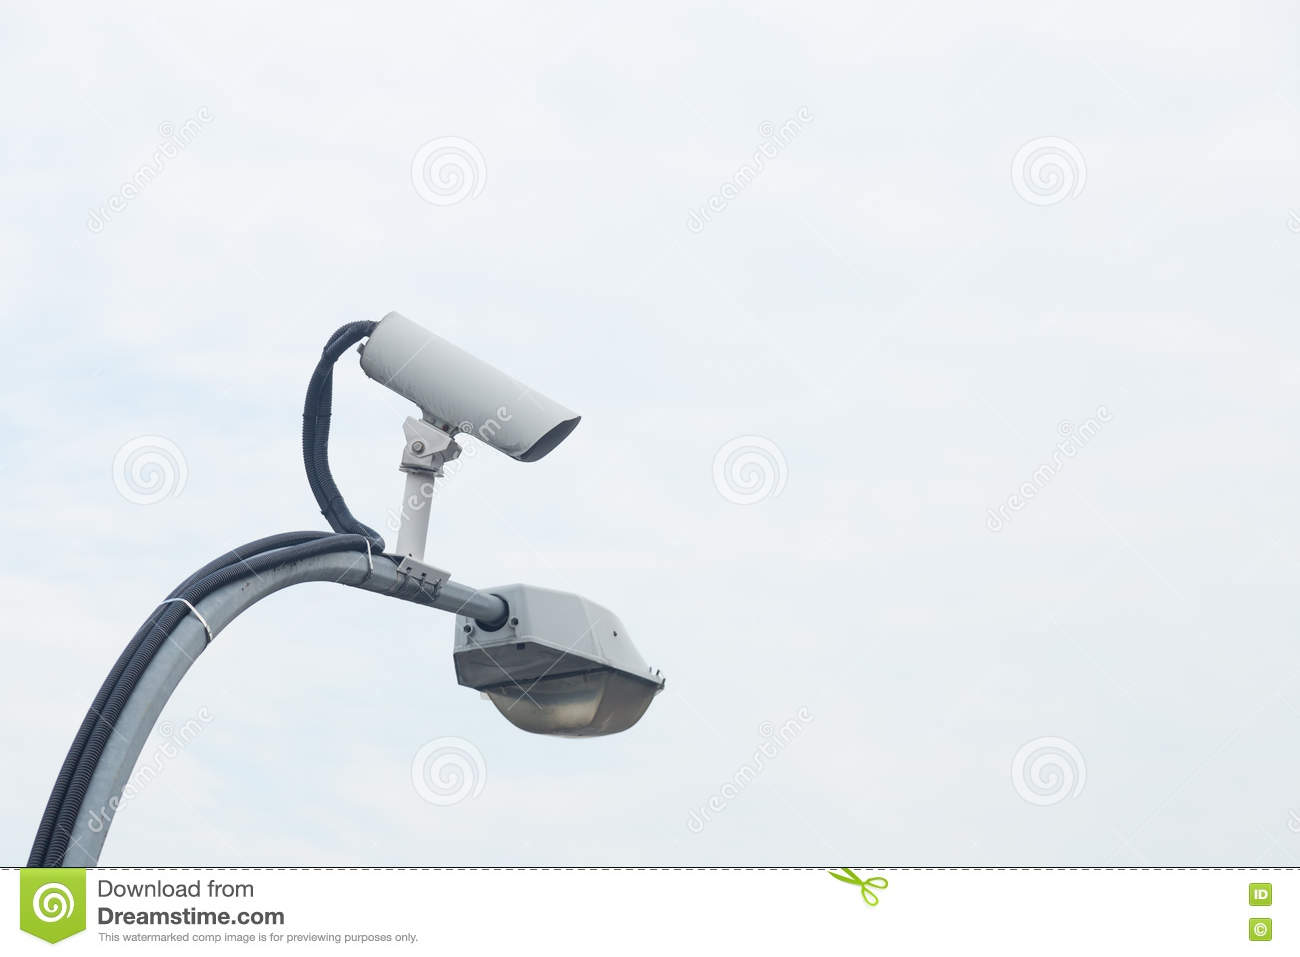 Cctv camera on light pole stock photo image of security 74453056 cctv camera on light pole aloadofball Image collections